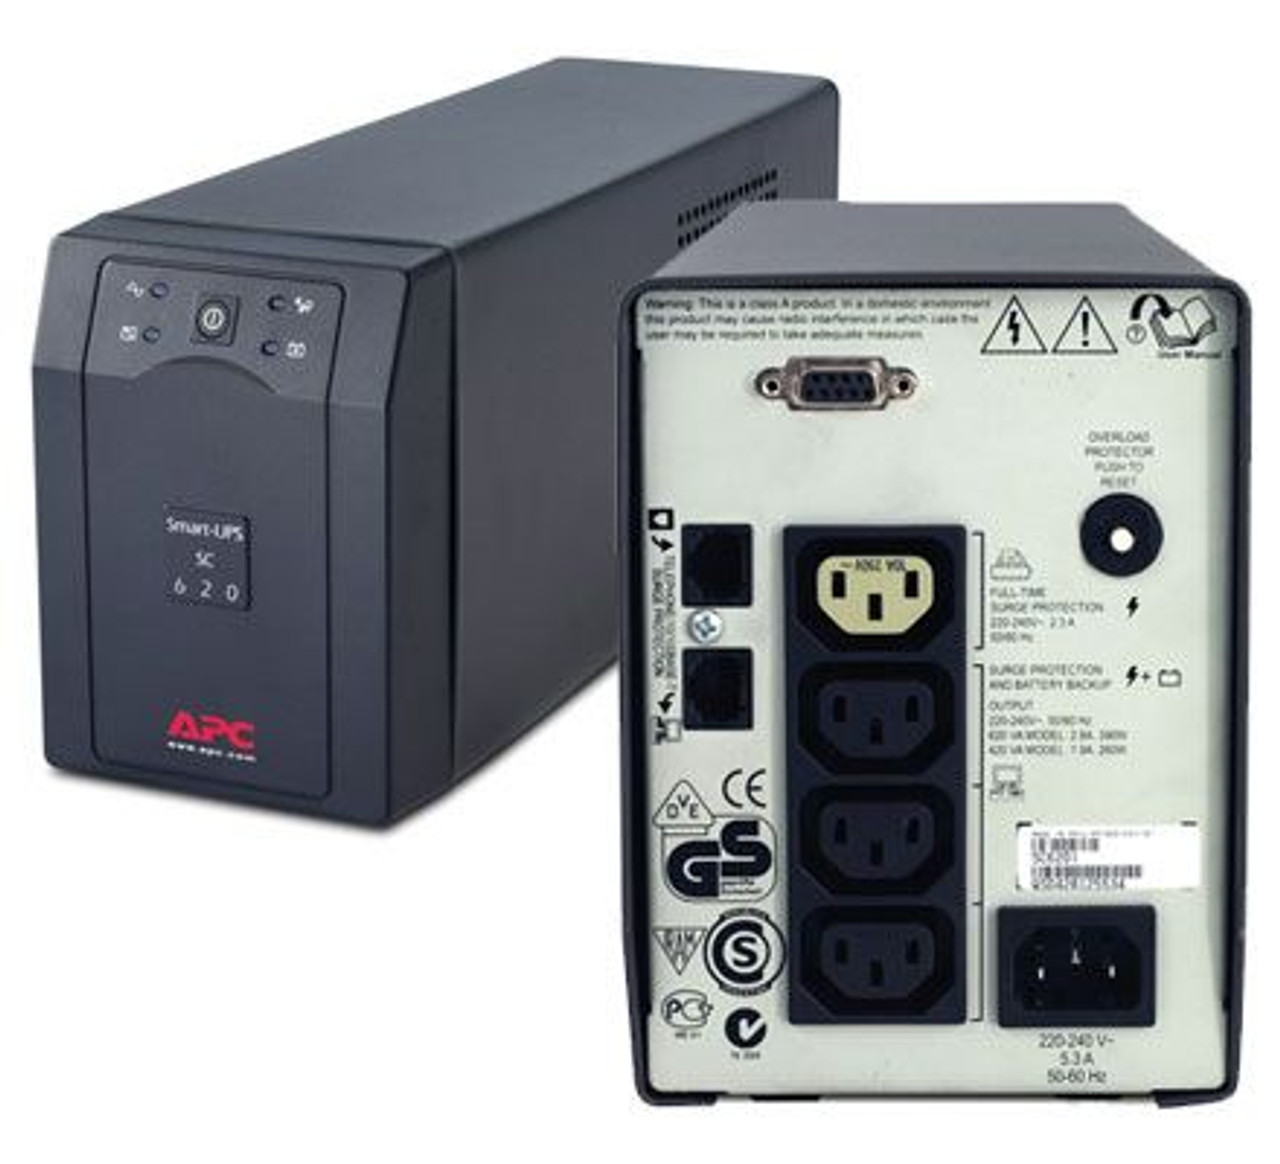 Image for APC SC620I Smart-UPS SC 620VA 390W 230V RS232 CX Computer Superstore